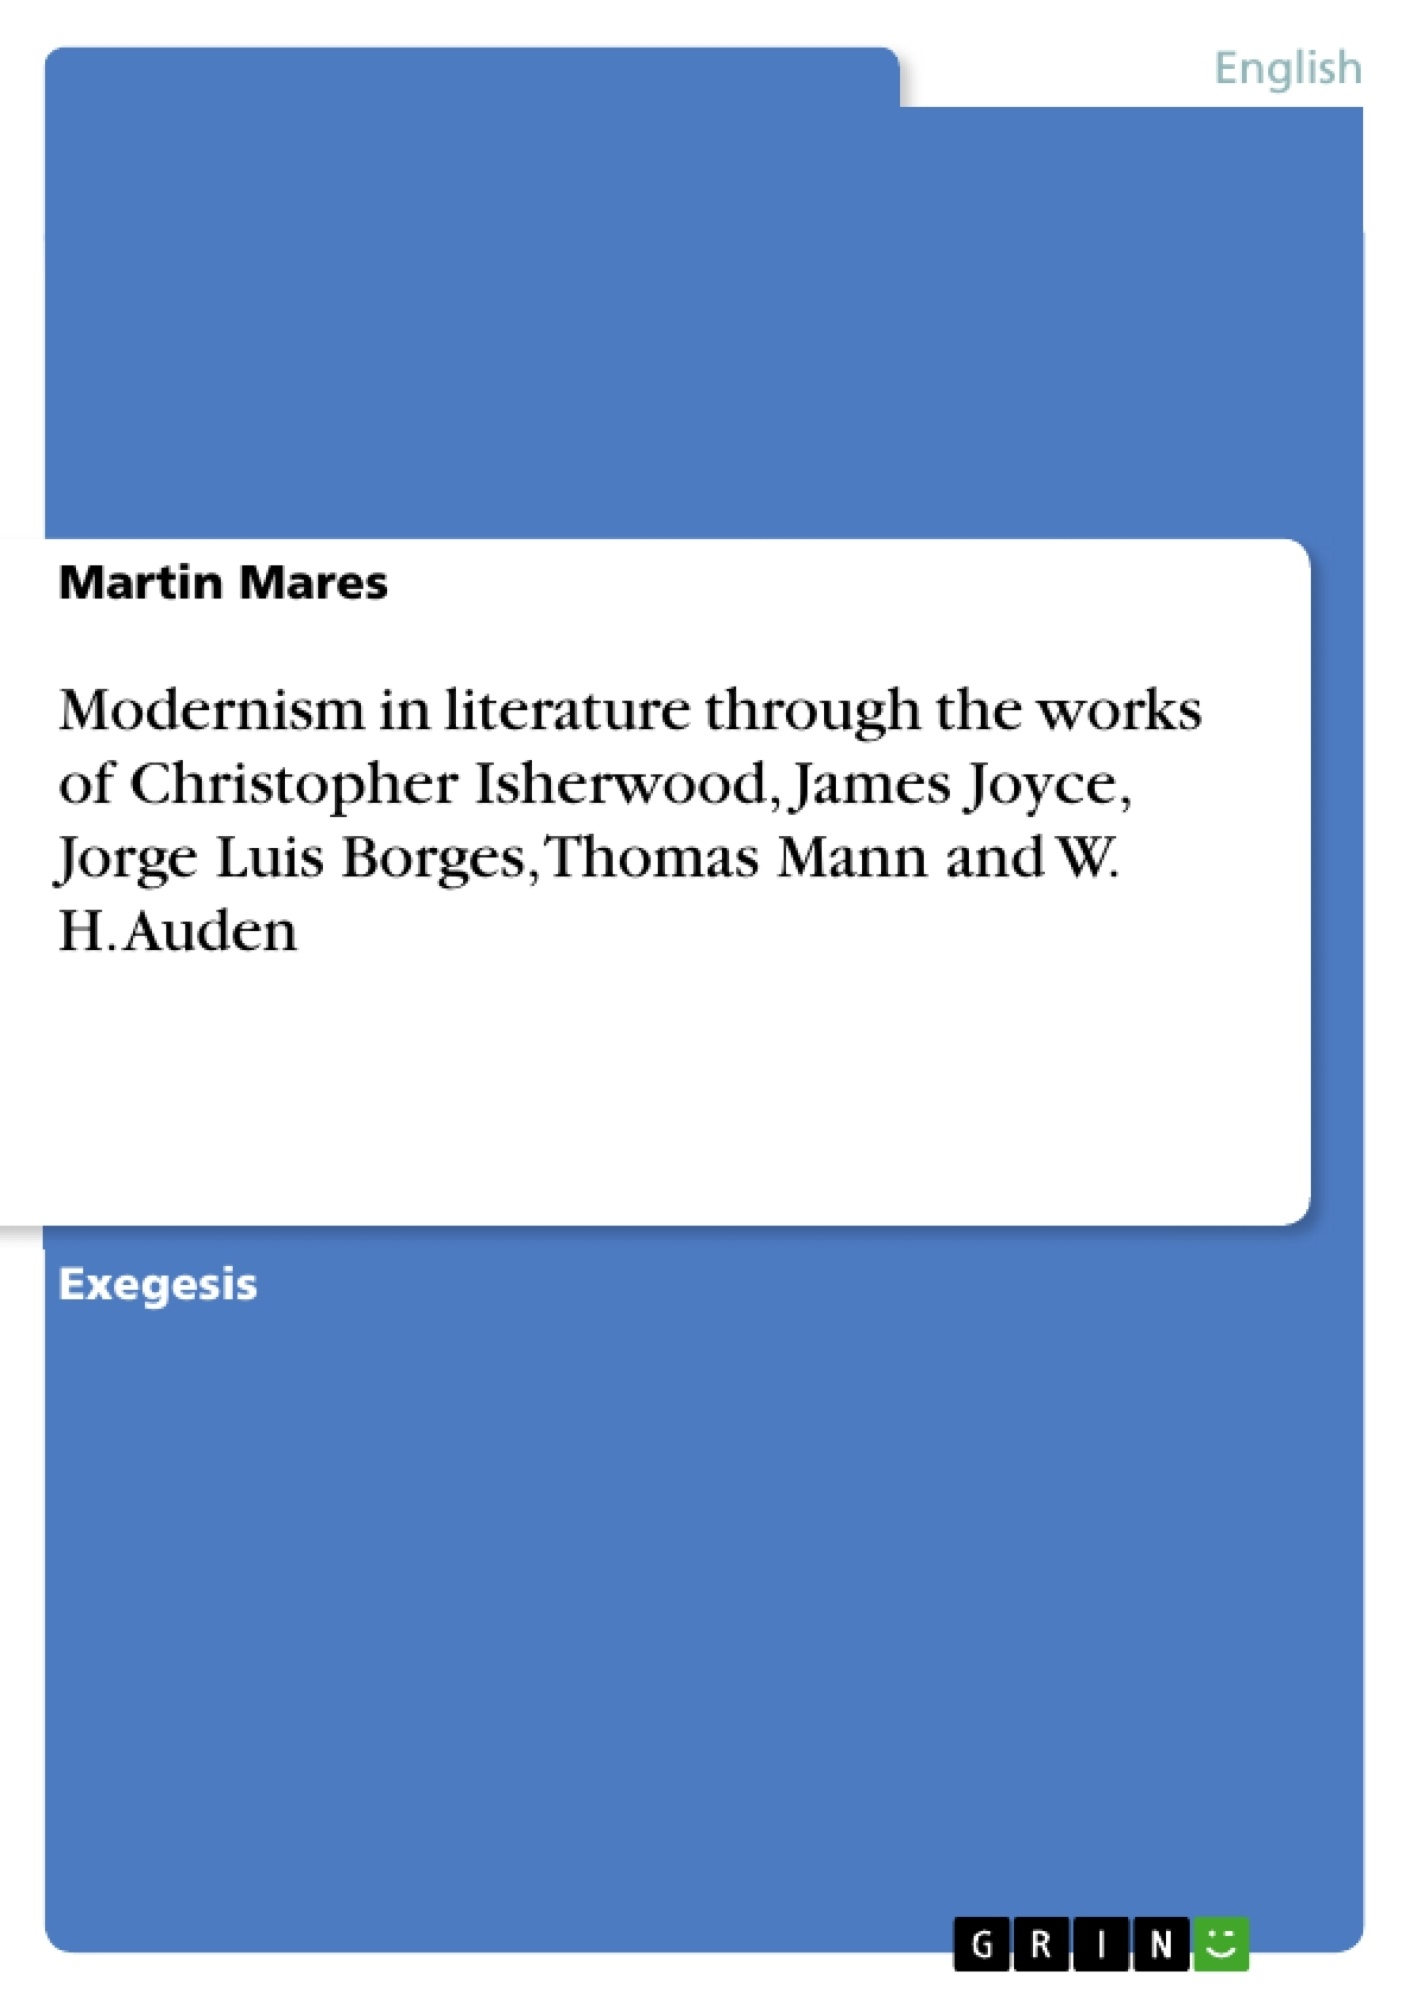 Title: Modernism in literature through the works of Christopher Isherwood, James Joyce, Jorge Luis Borges, Thomas Mann and W. H. Auden